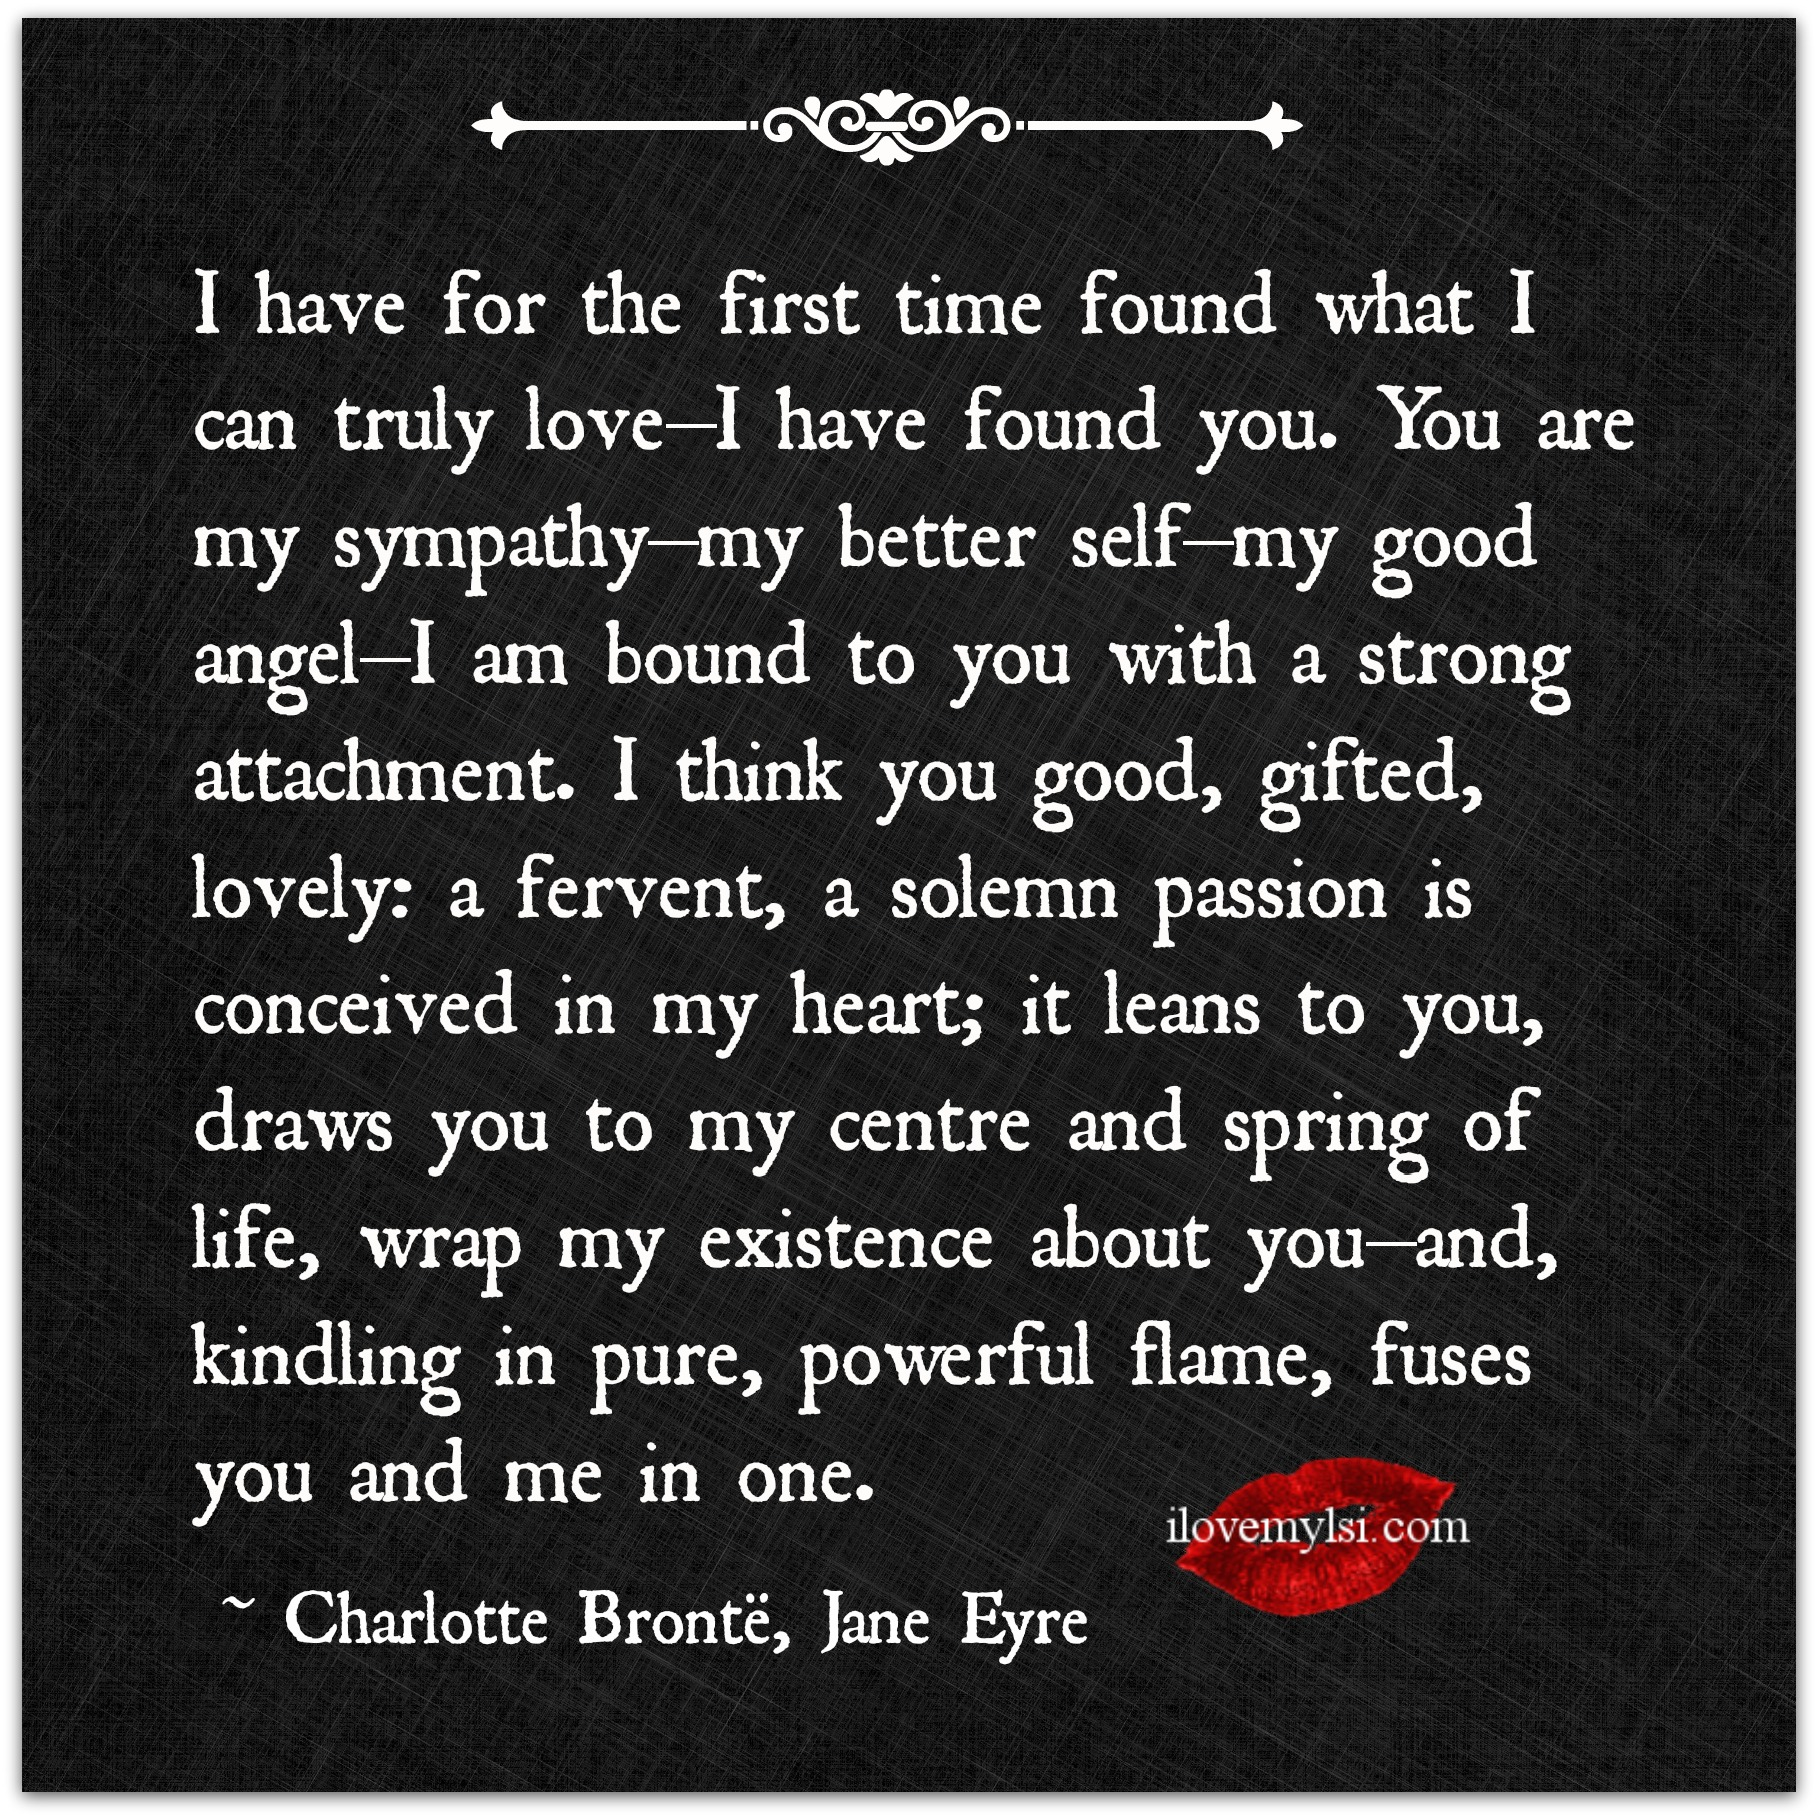 Quotes Jane Eyre Jane Eyre Archives  I Love My Lsi